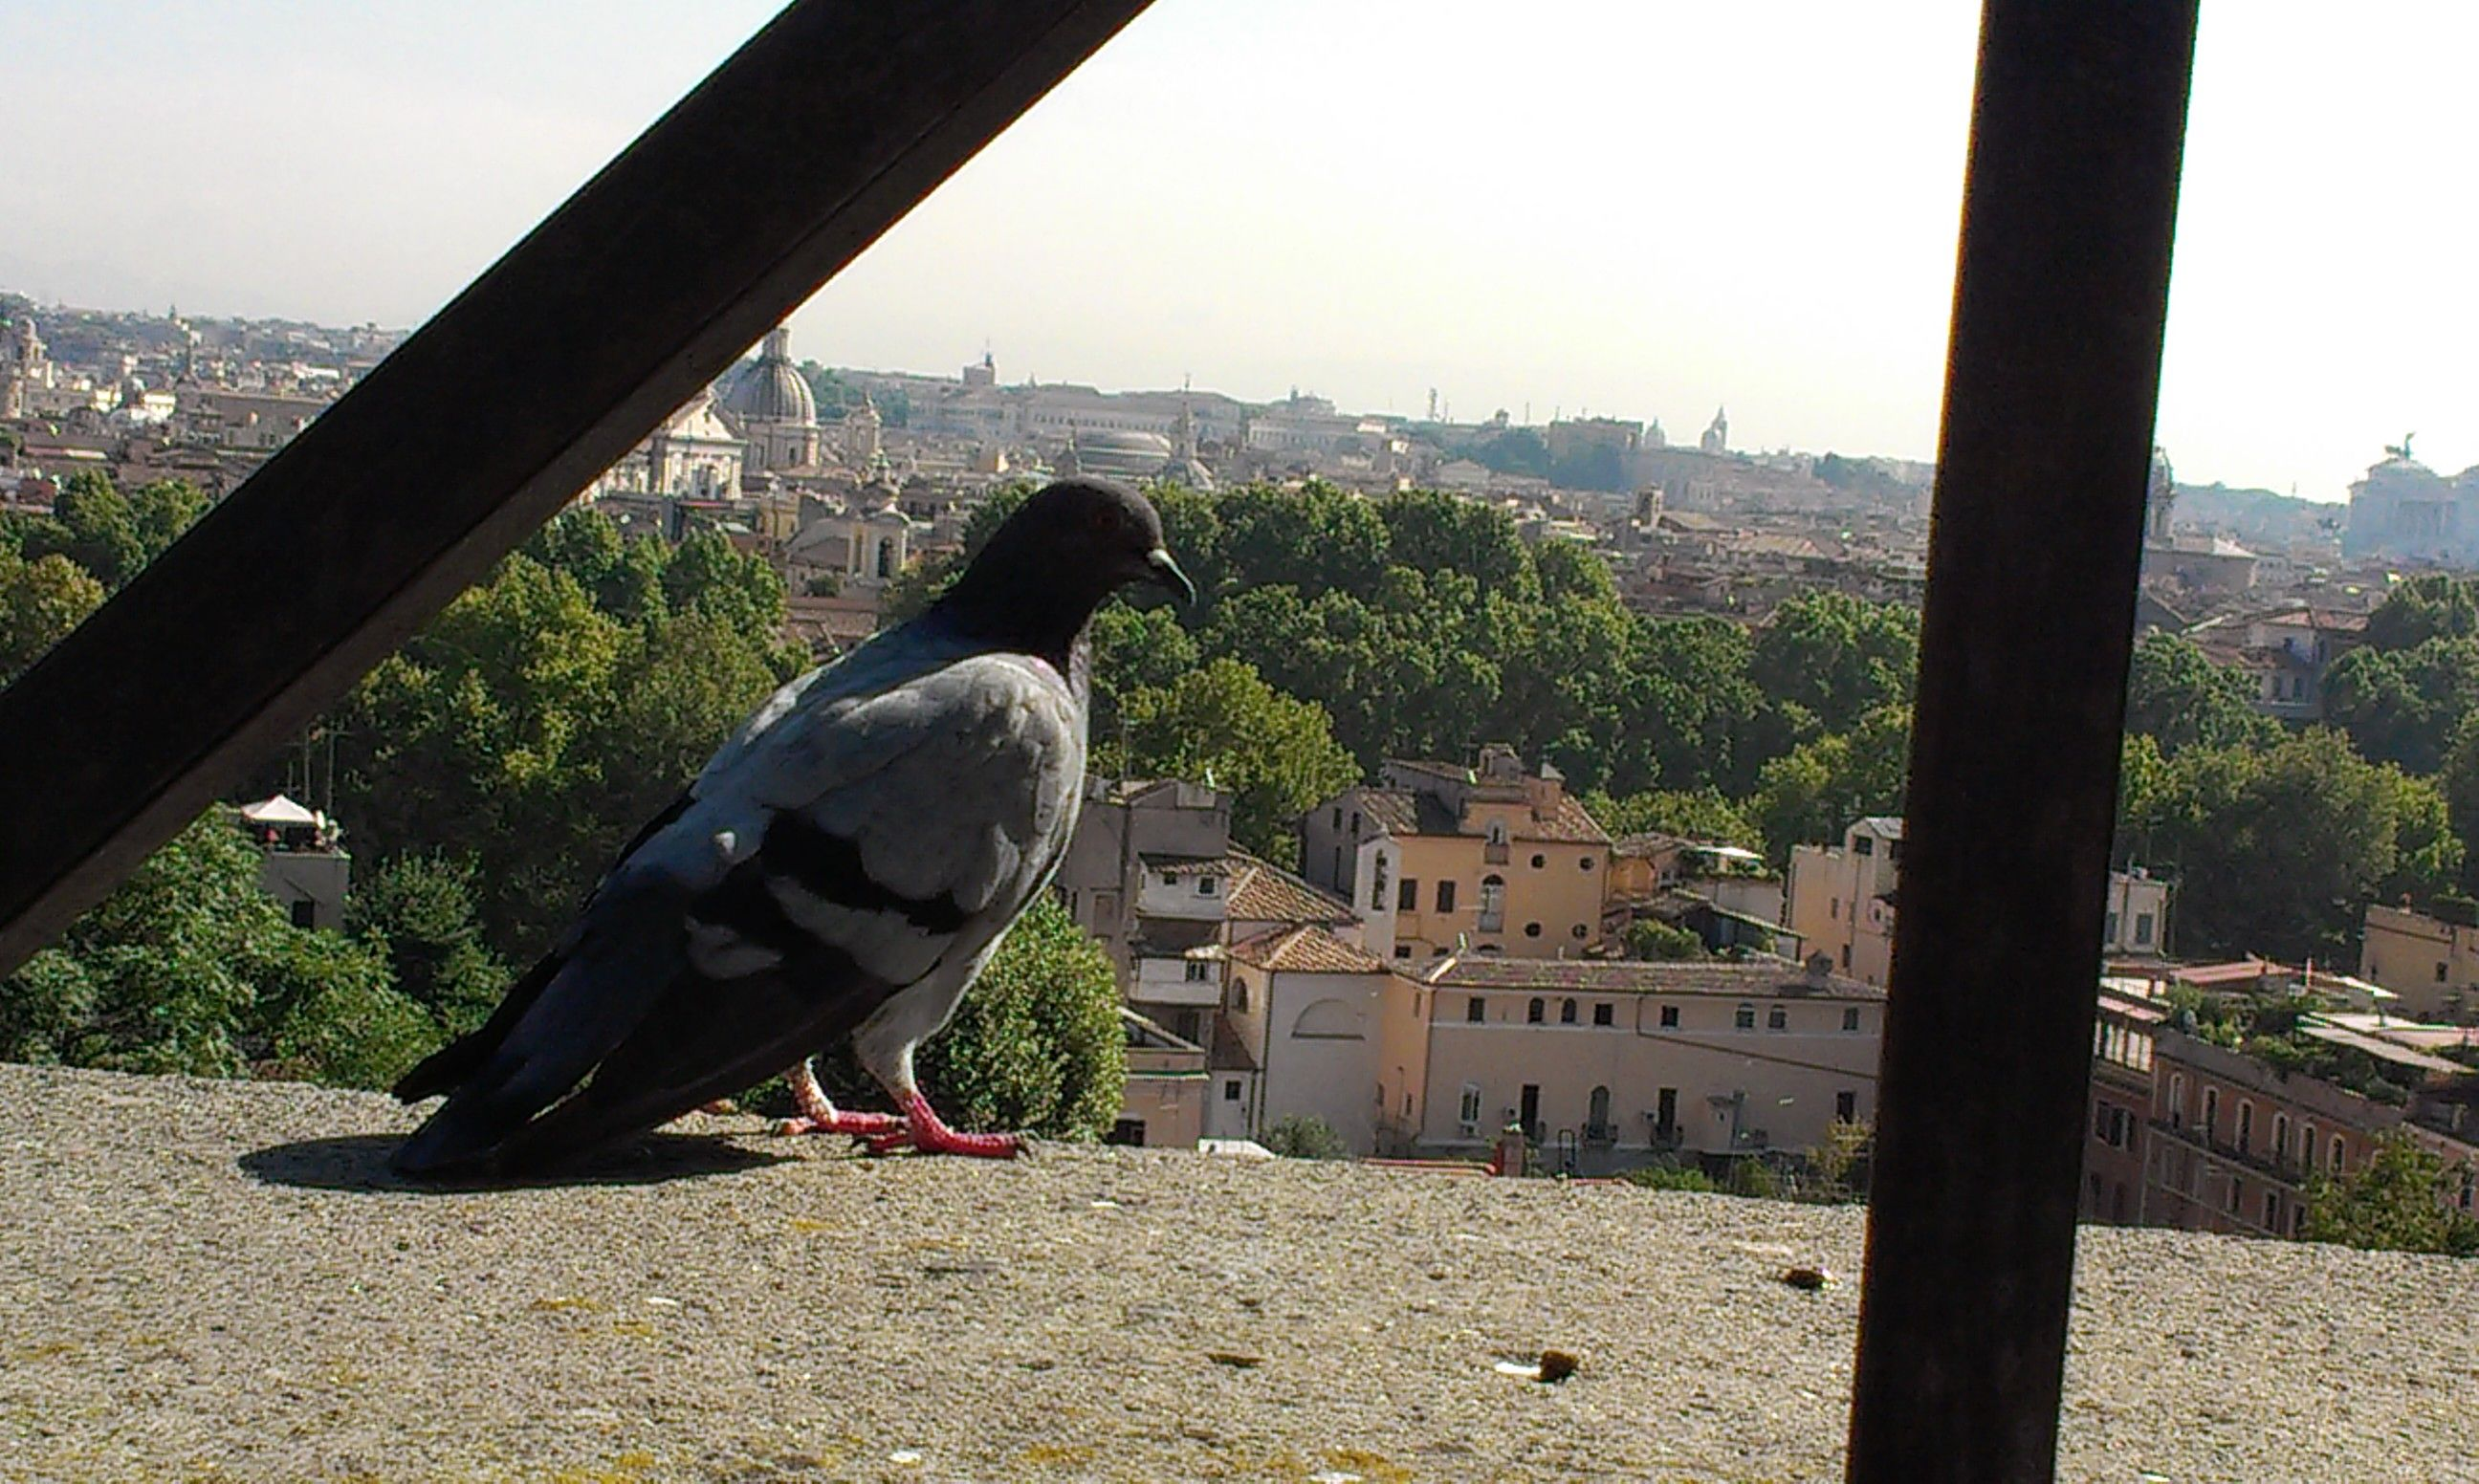 Dove in Rome, Made by Bauke Beert Keizer